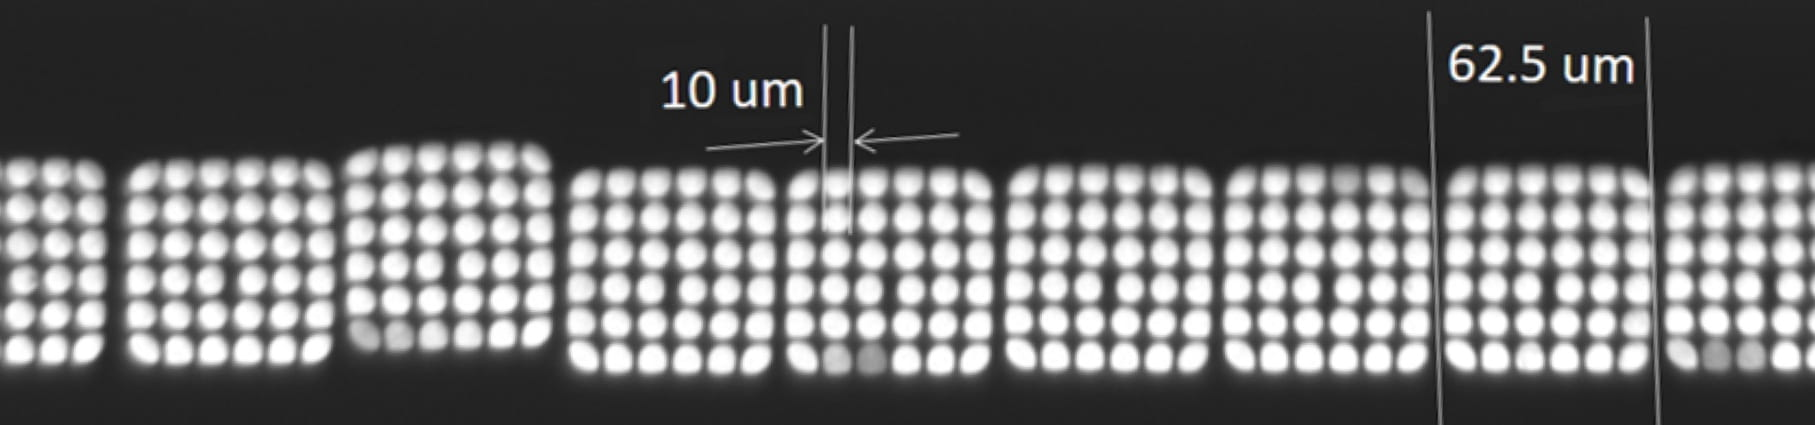 Bundles of optic fibers in the TuLIPSS spectrometer deliver spatial and spectral data to a detector in an instant.